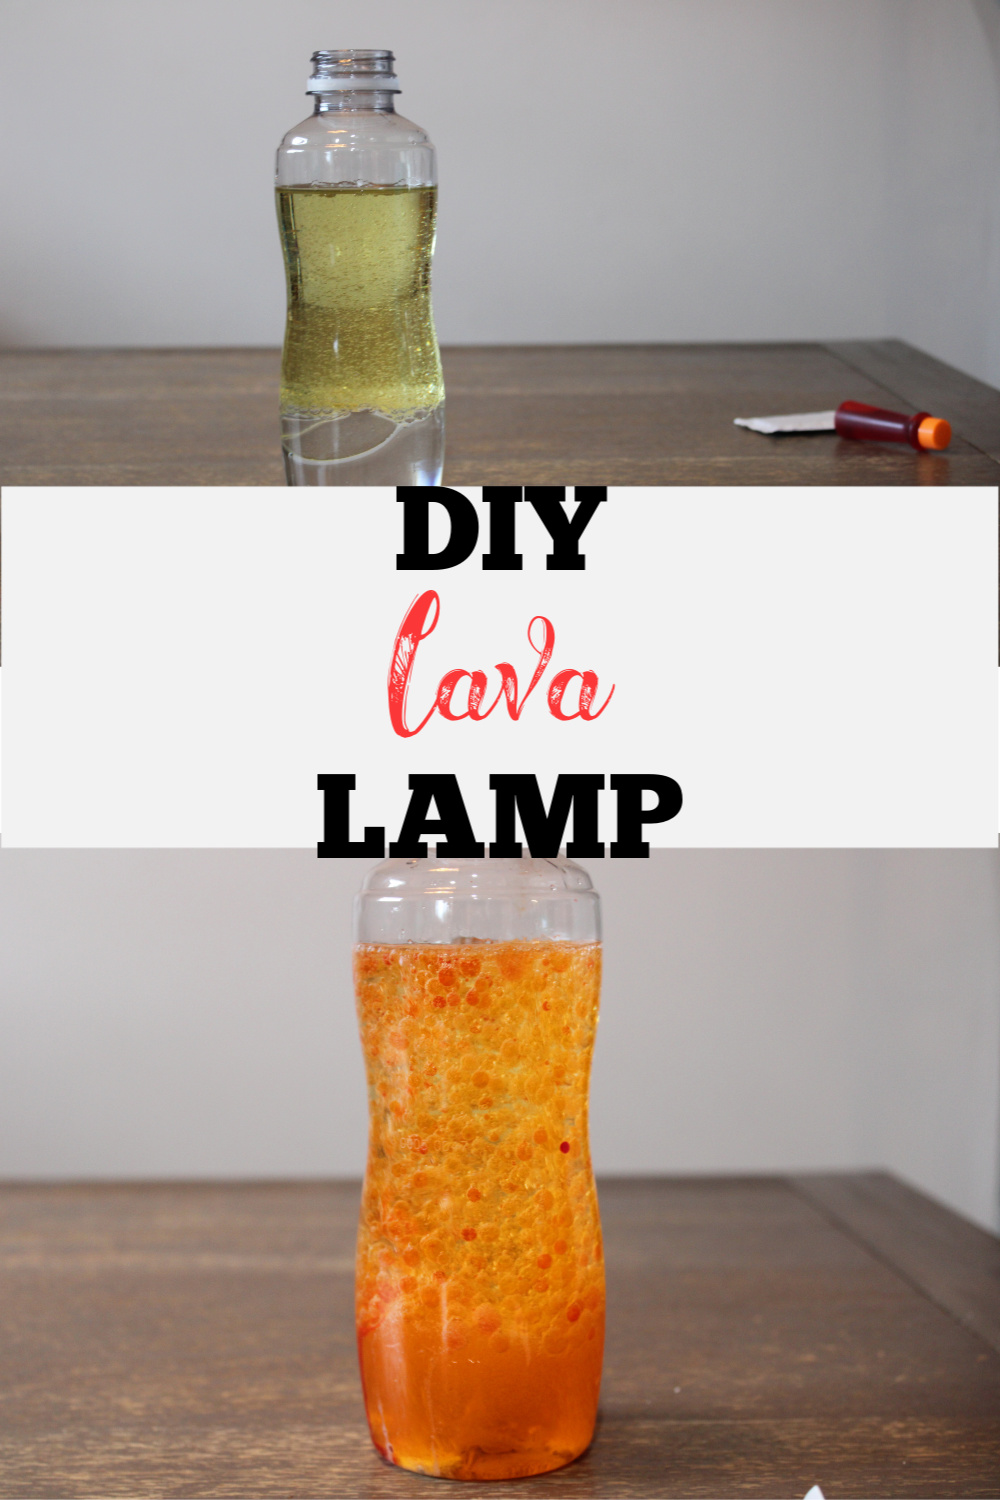 Hey guys, I'm back with another great and easy craft for the kids to make! This DIY Lava Lamp is sure to keep the kids entertained for hours!